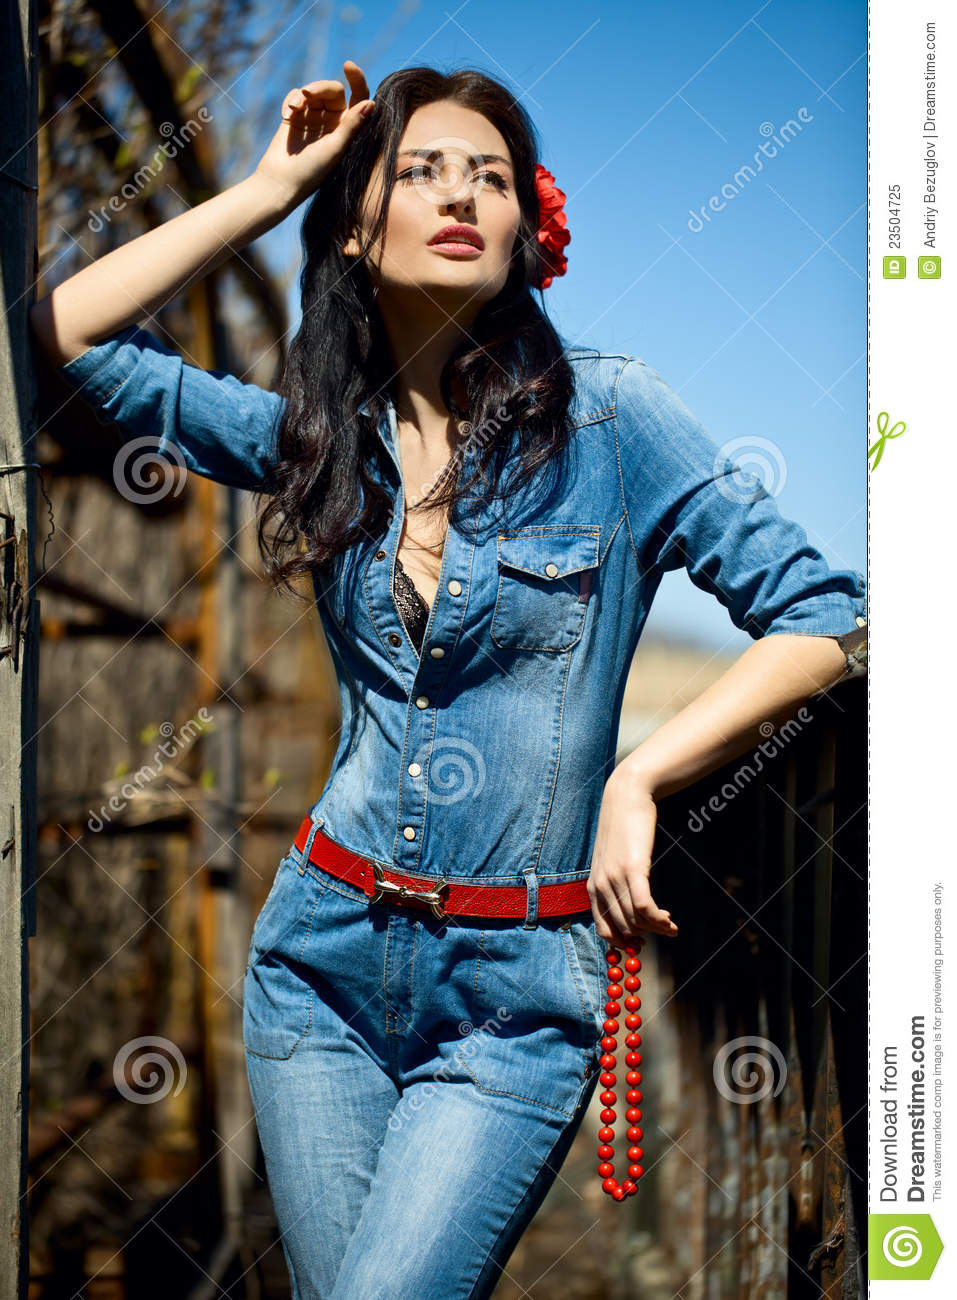 Video Girl Dress: Girl In Jumpsuit Royalty Free Stock Photo